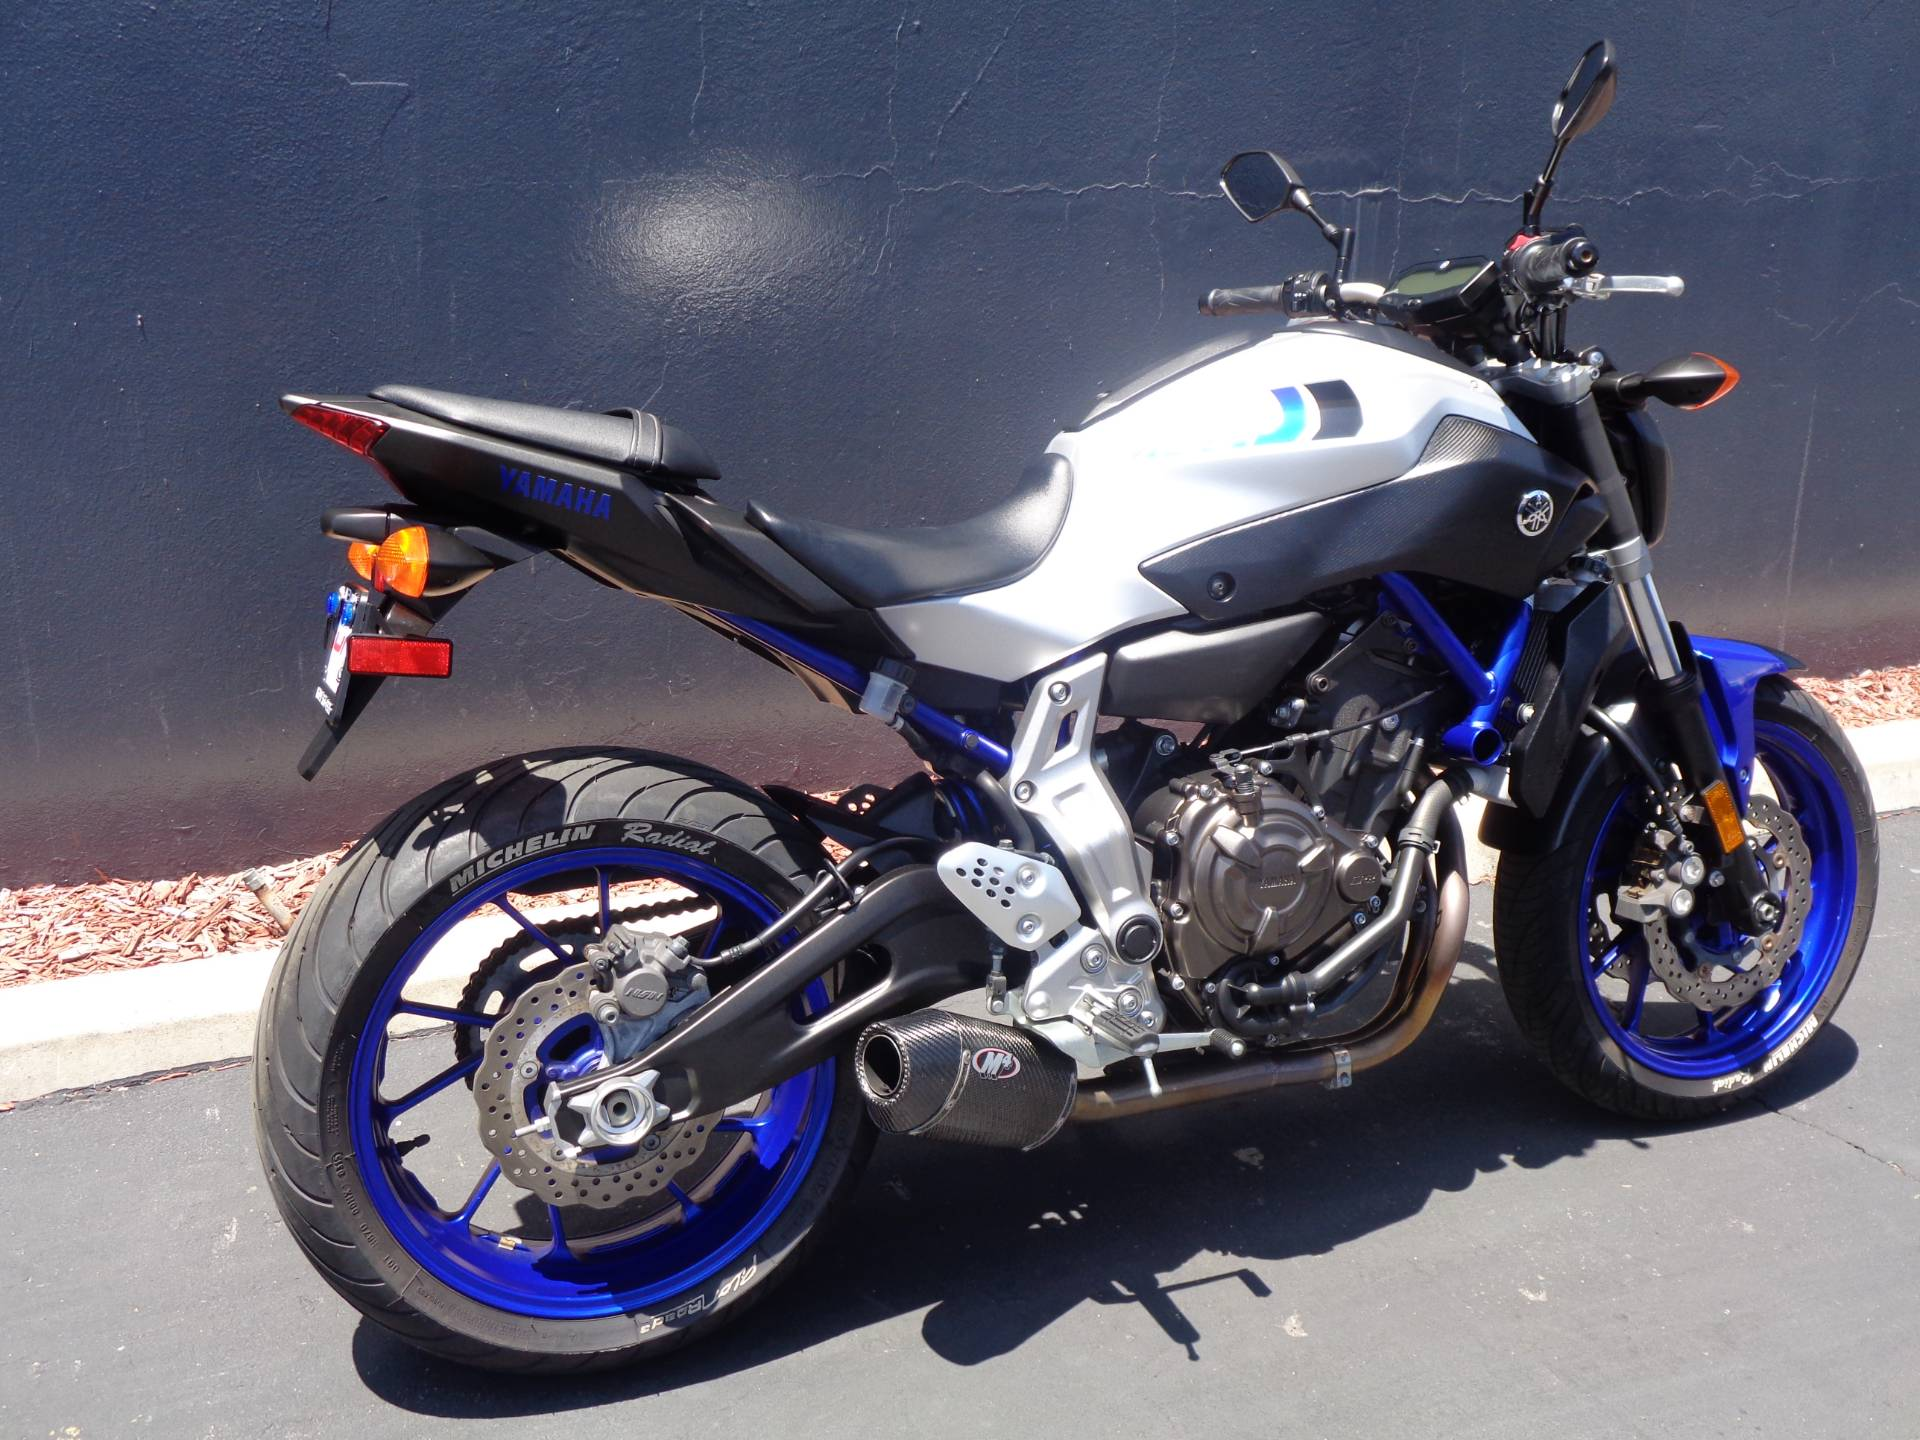 2016 Yamaha Fz 07 In Chula Vista California